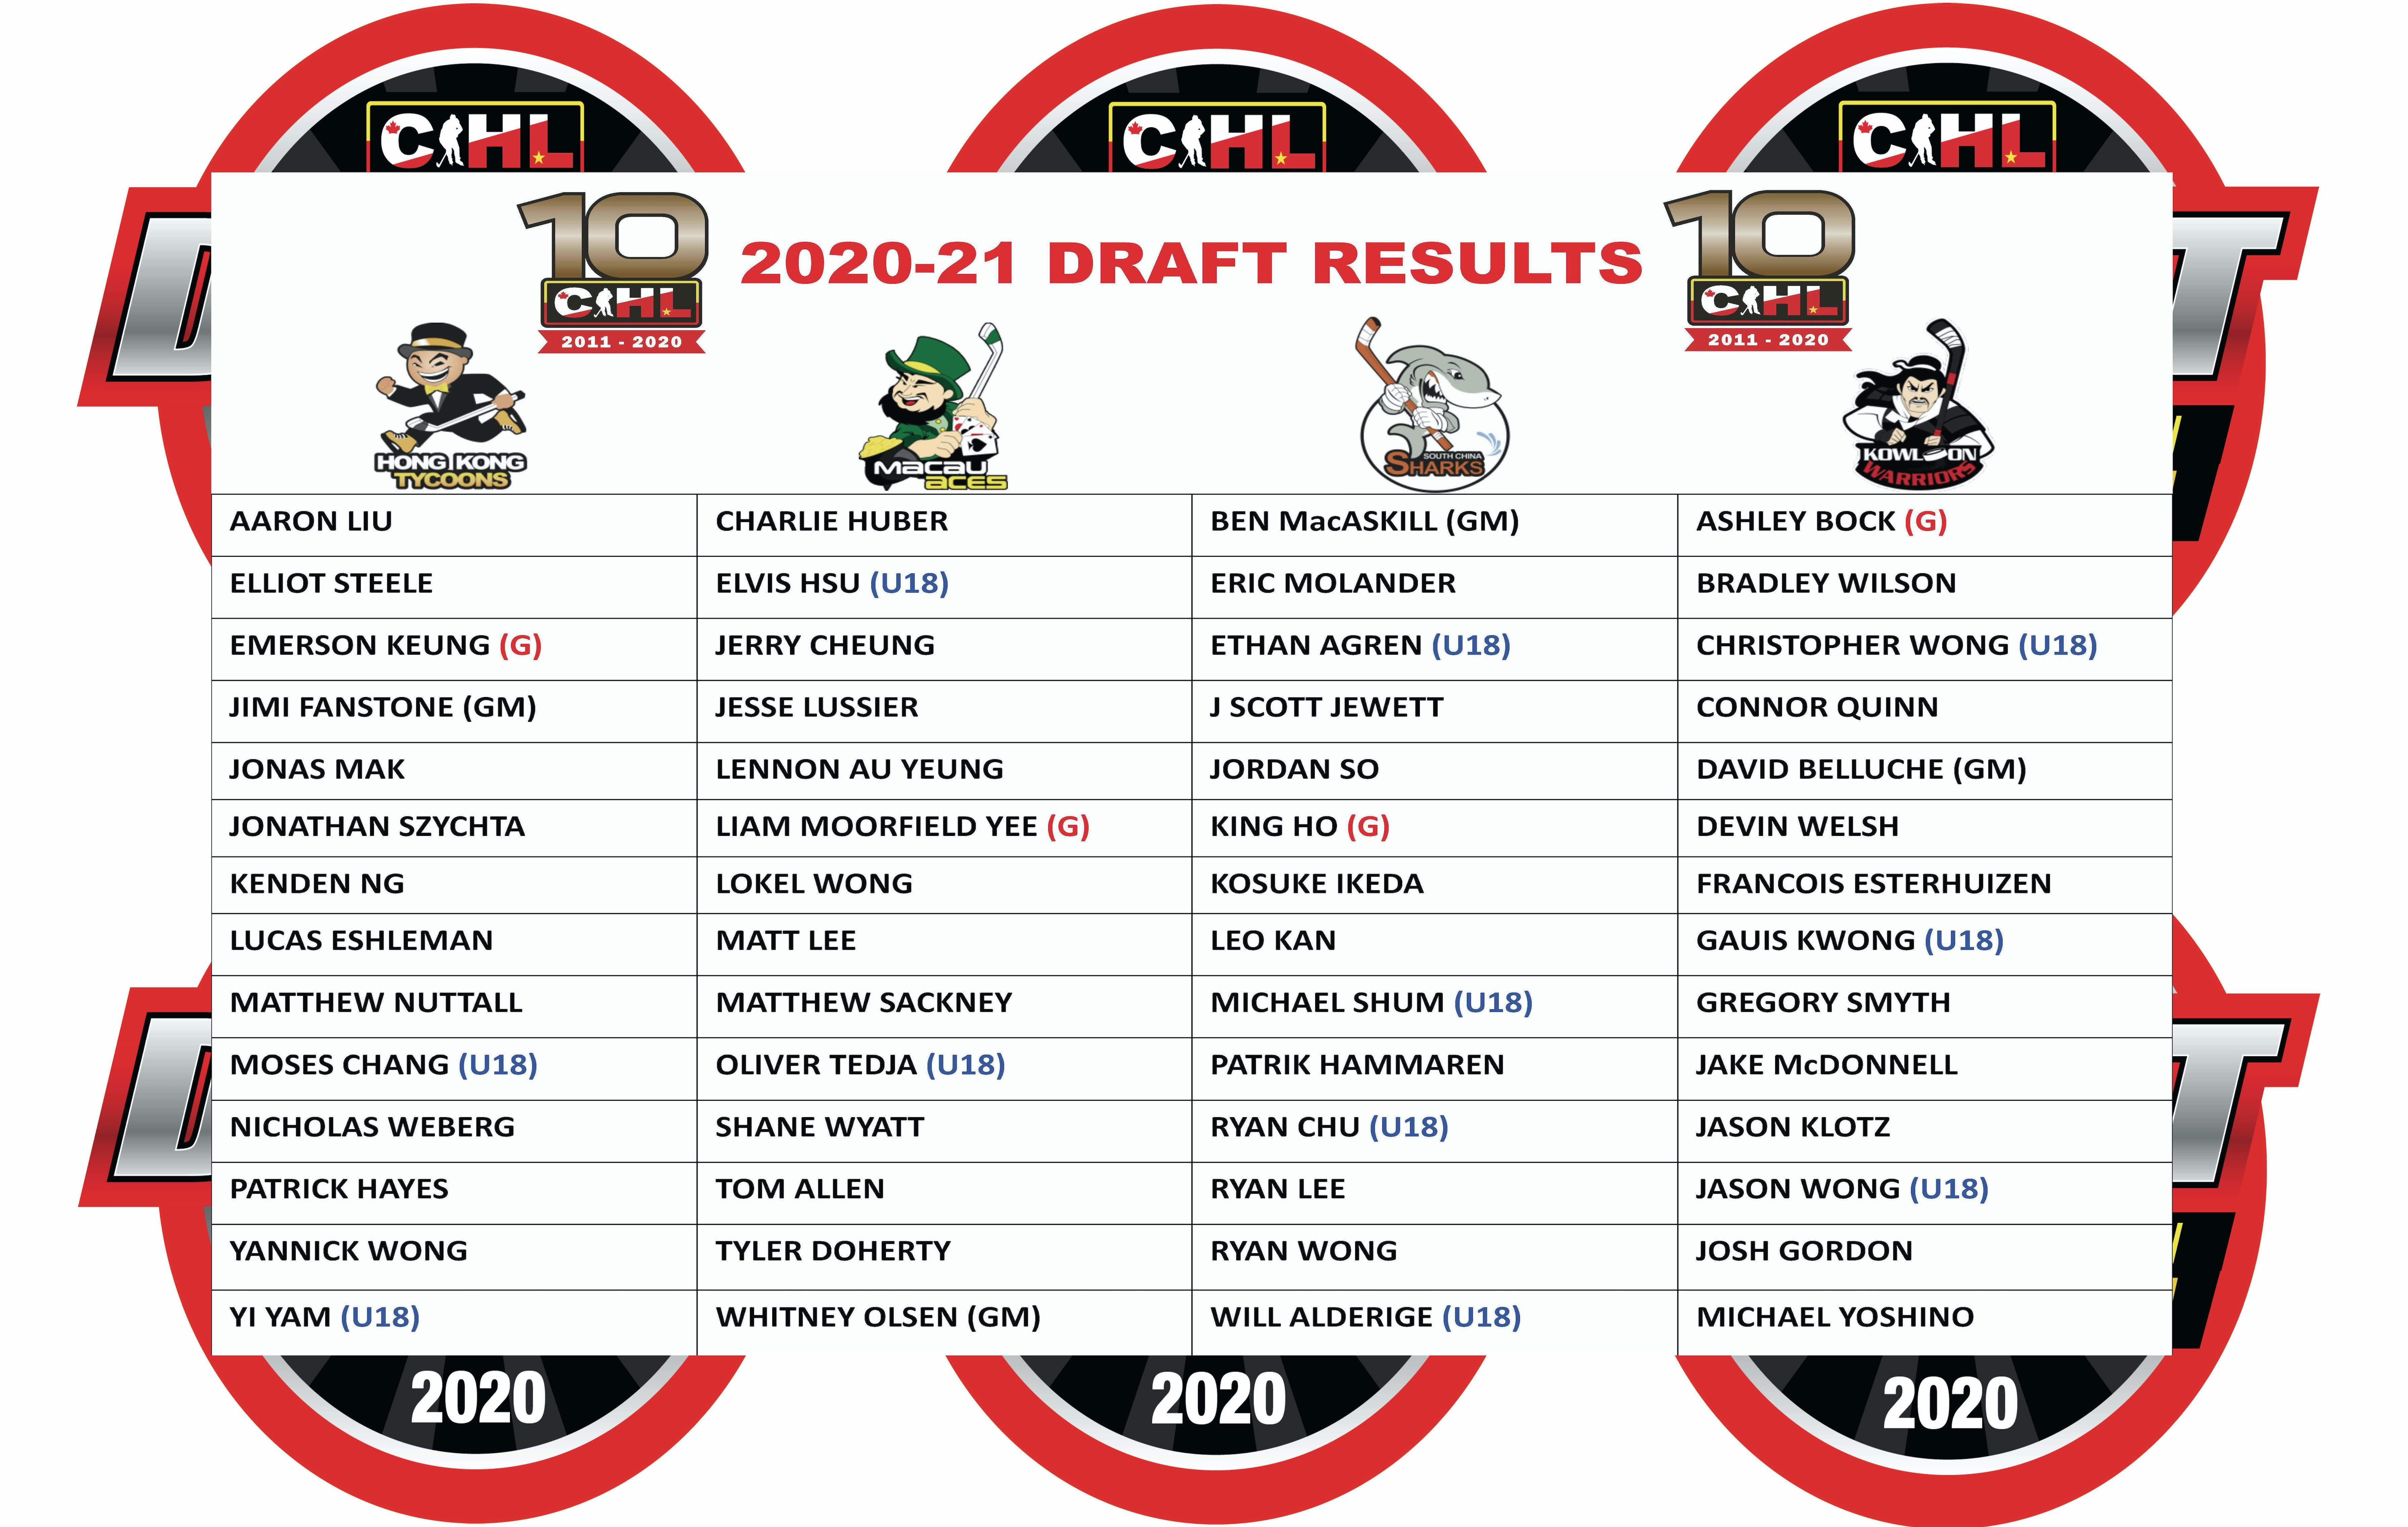 CIHL 2020-2021 Draft results!